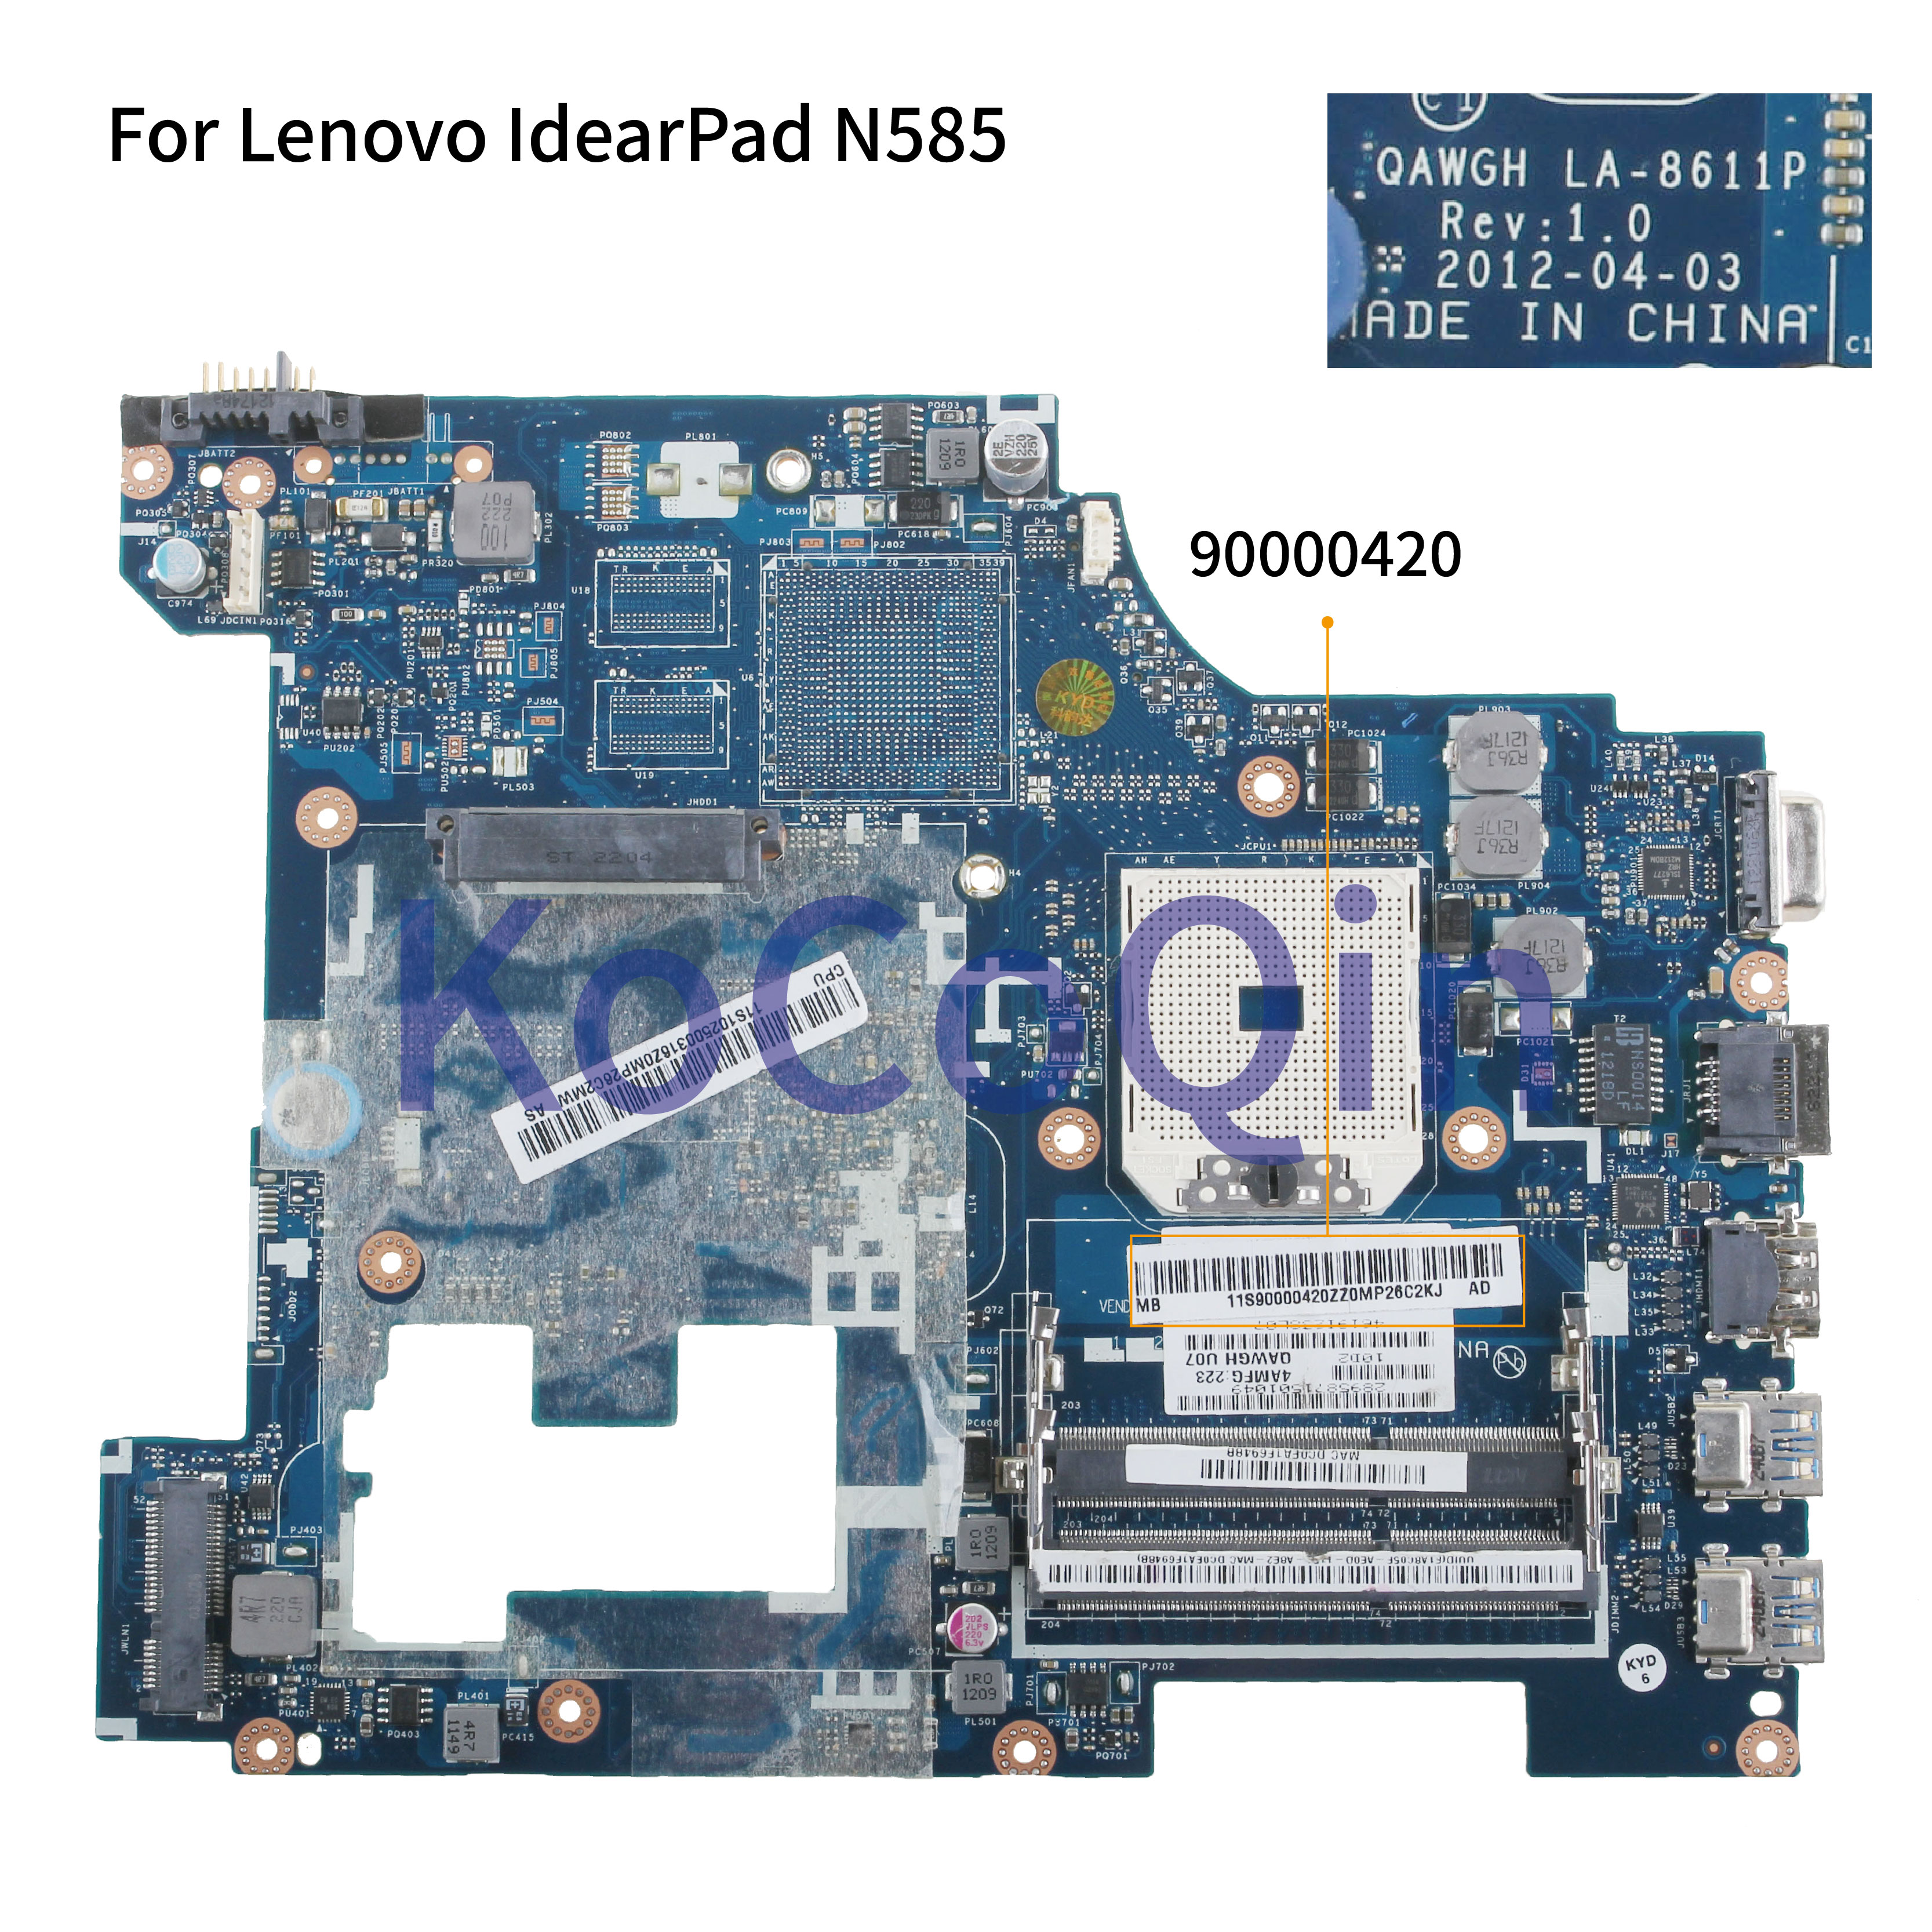 KoCoQin Laptop Motherboard For Lenovo P585 G585 N585 Mainboard QAWGH LA-8611P 90000420 AMD